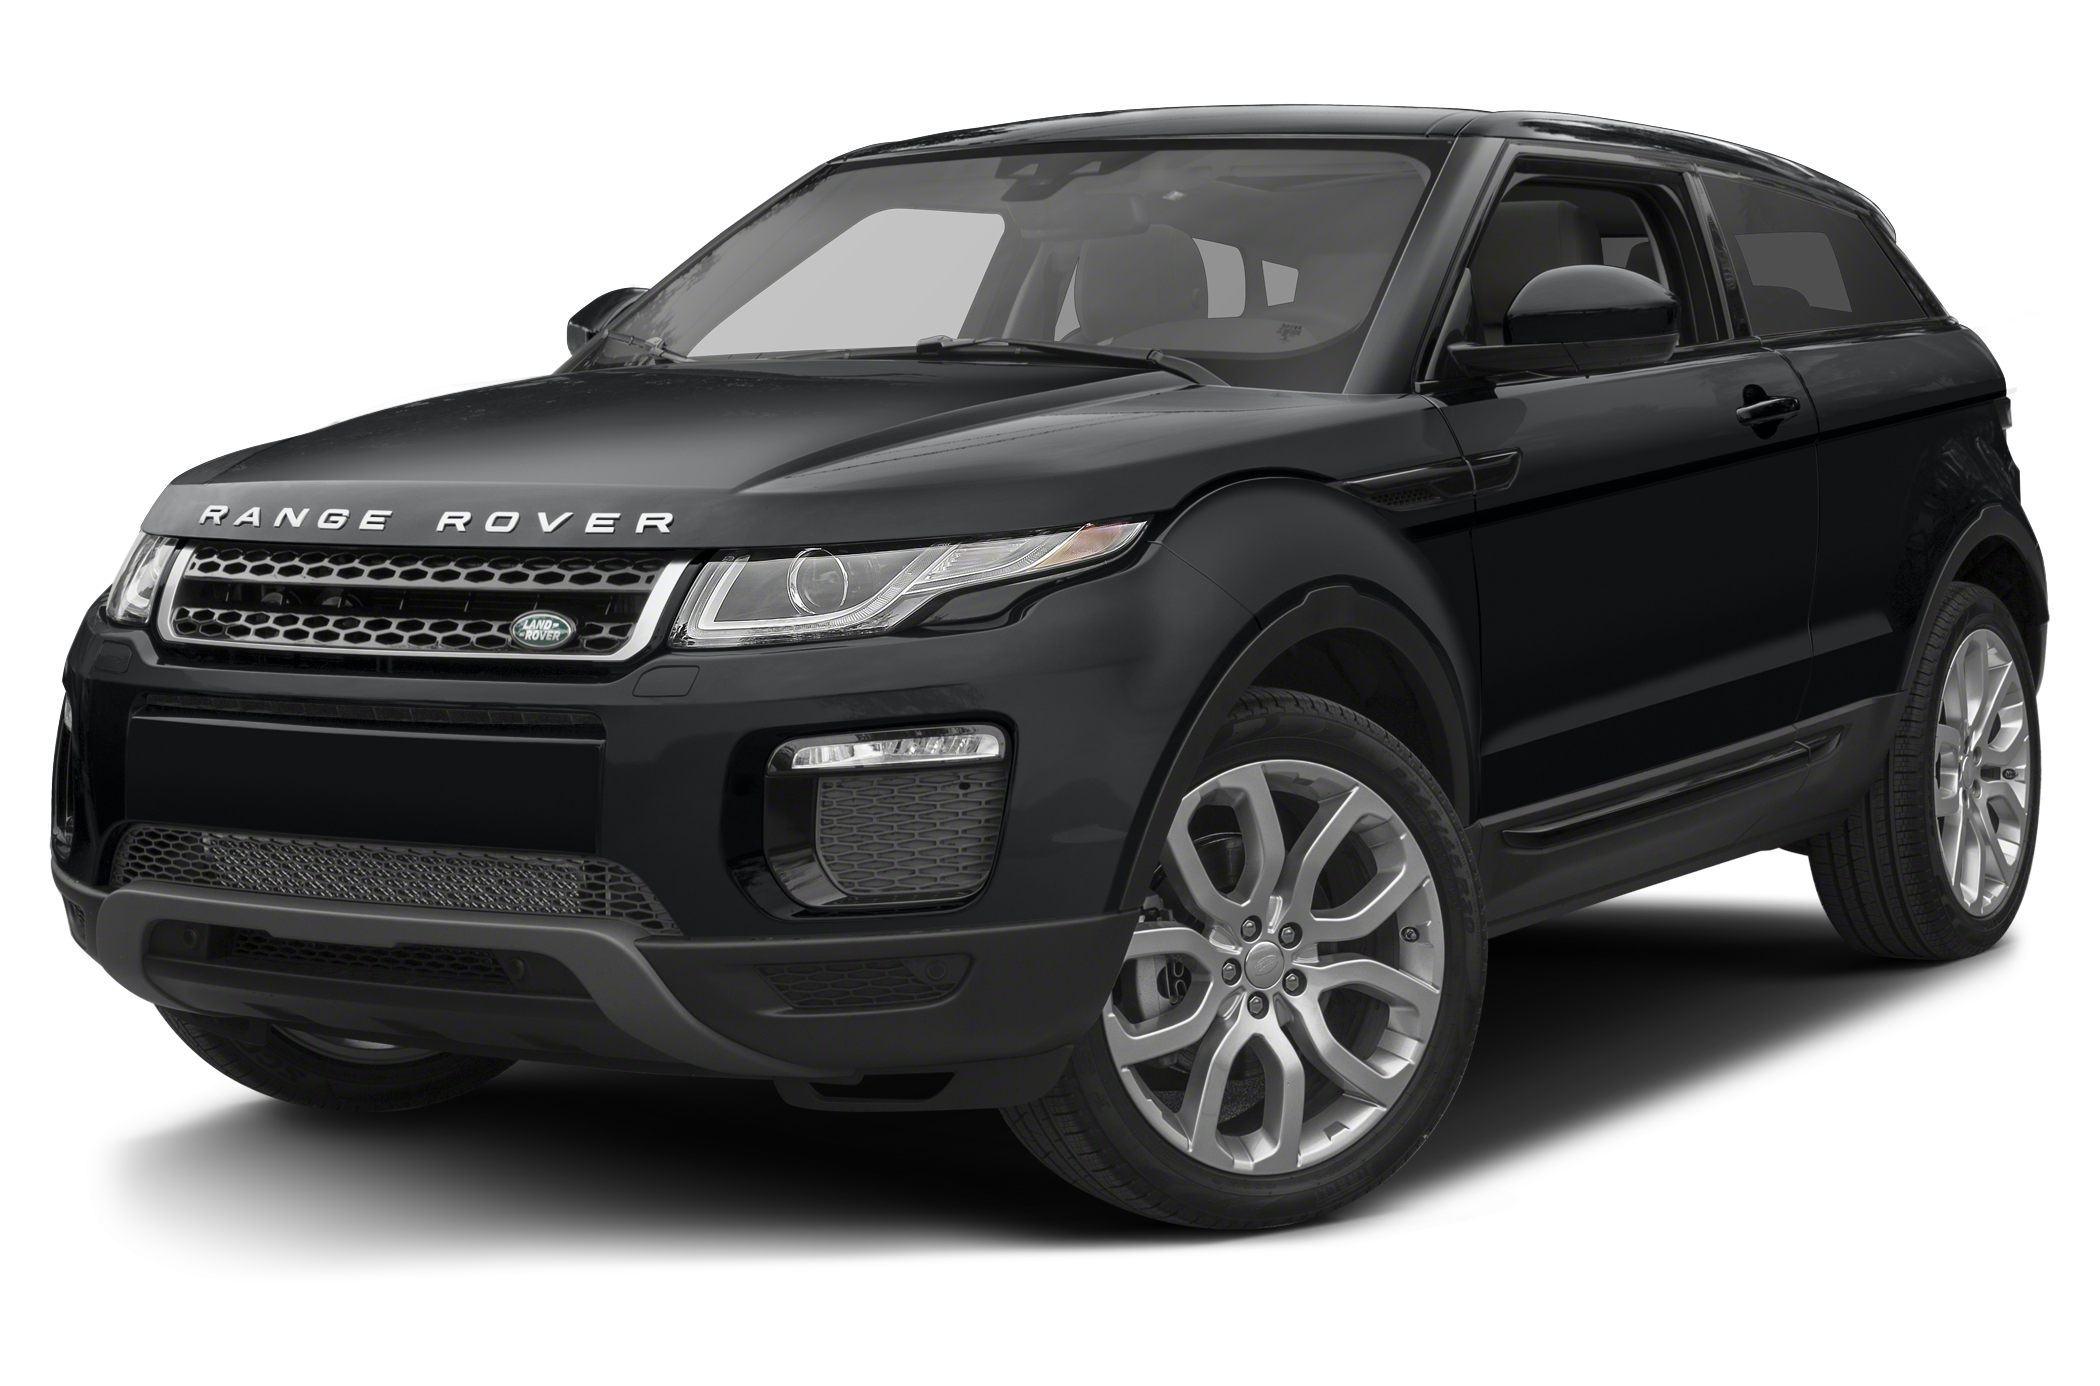 land rover range rover evoque prices reviews and new model information autoblog. Black Bedroom Furniture Sets. Home Design Ideas